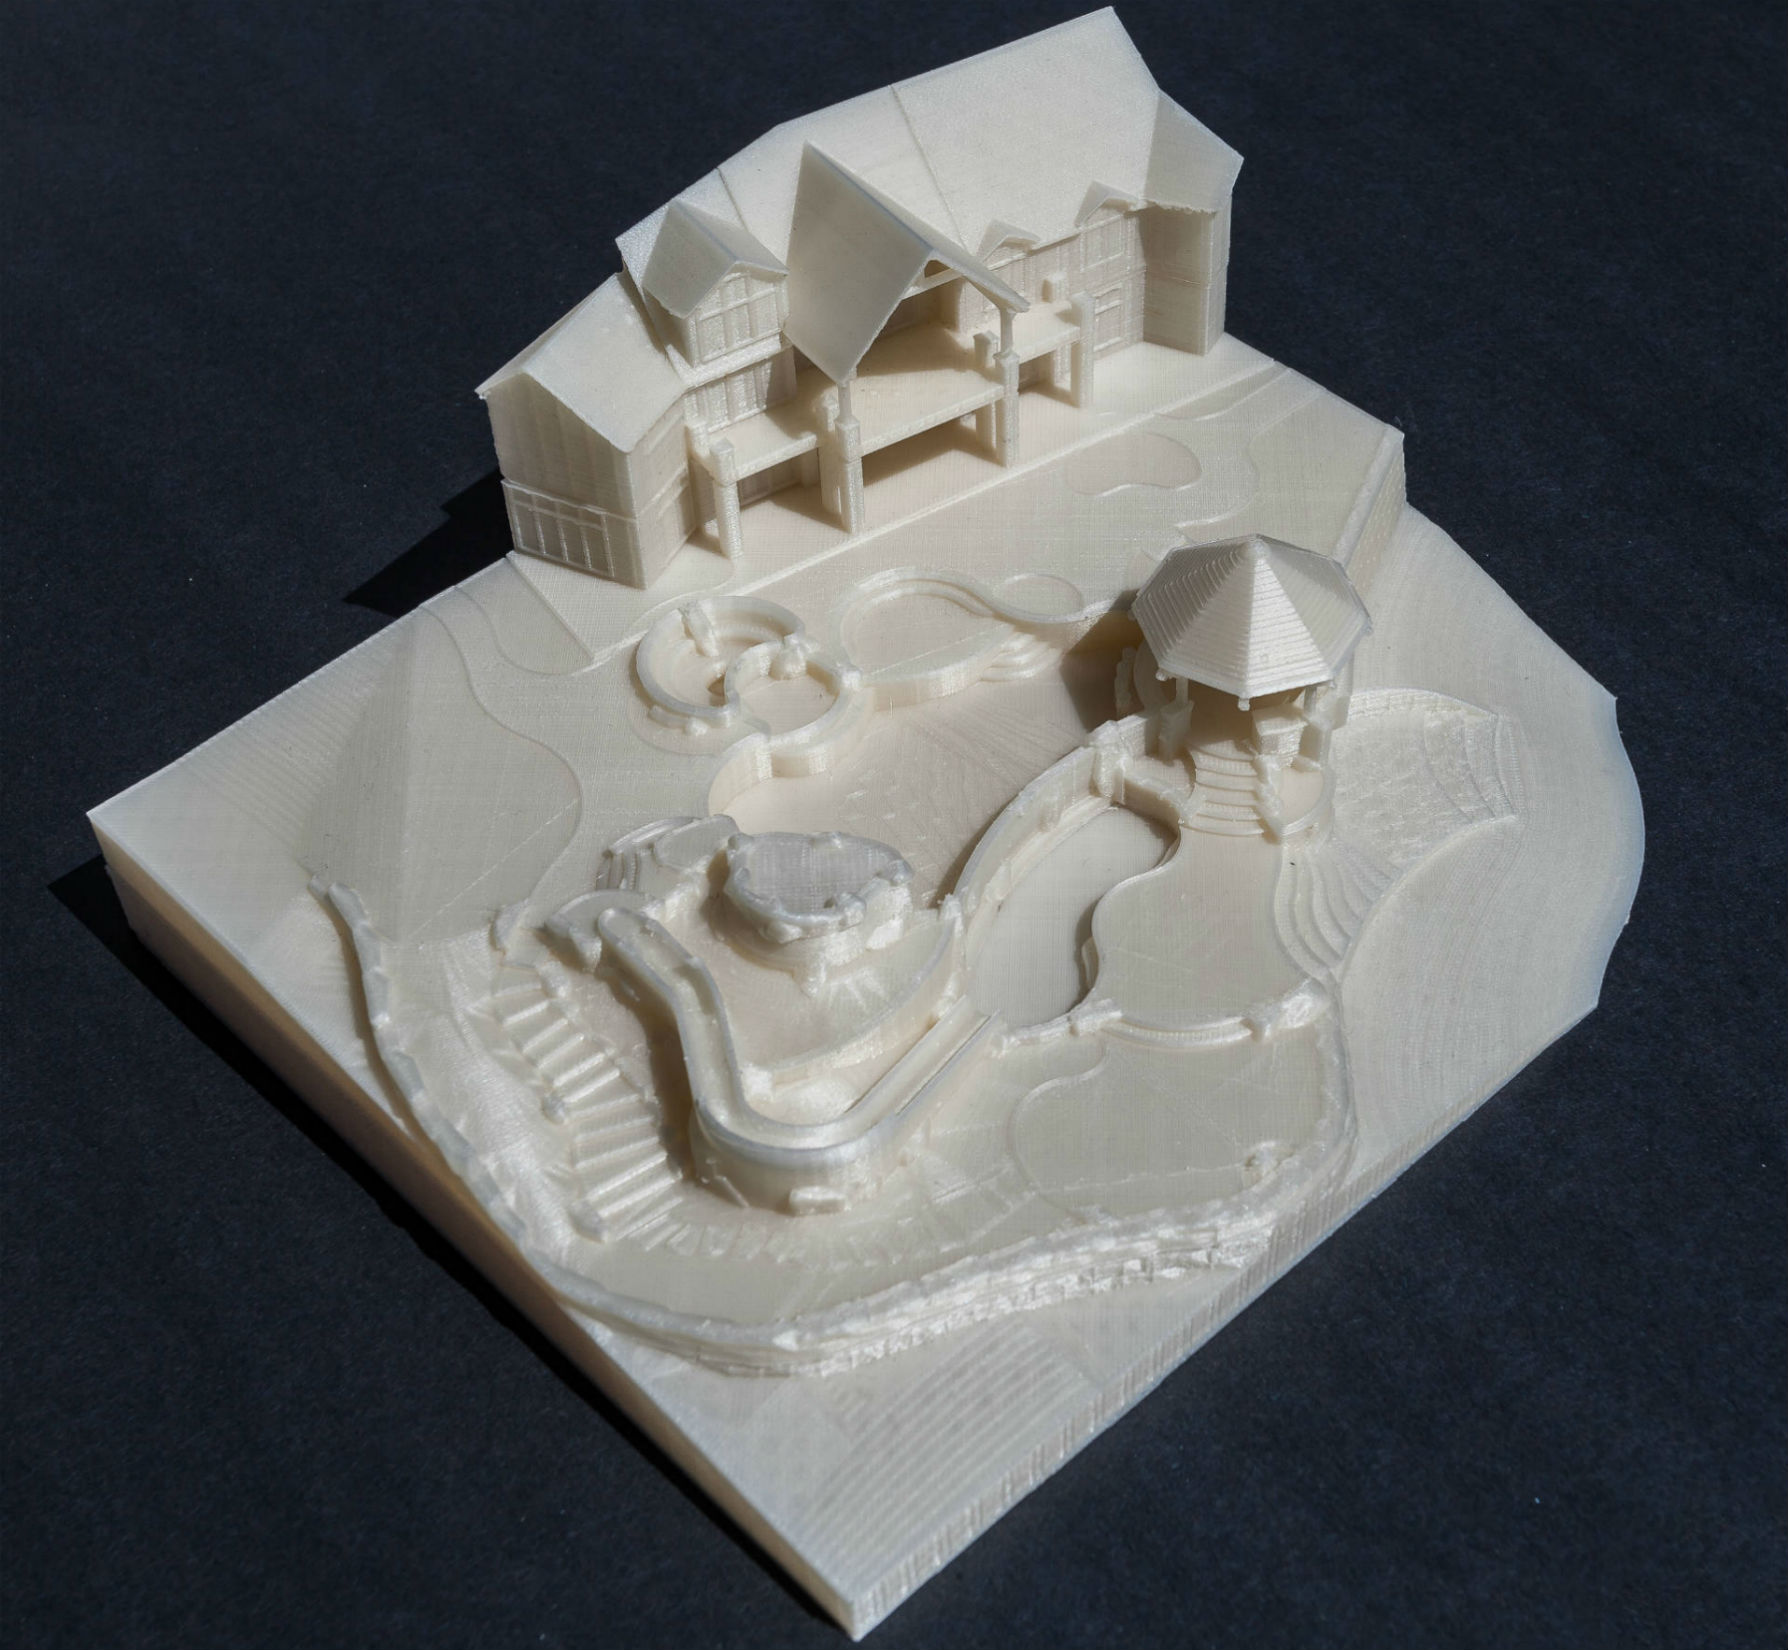 3d printed landscaping model